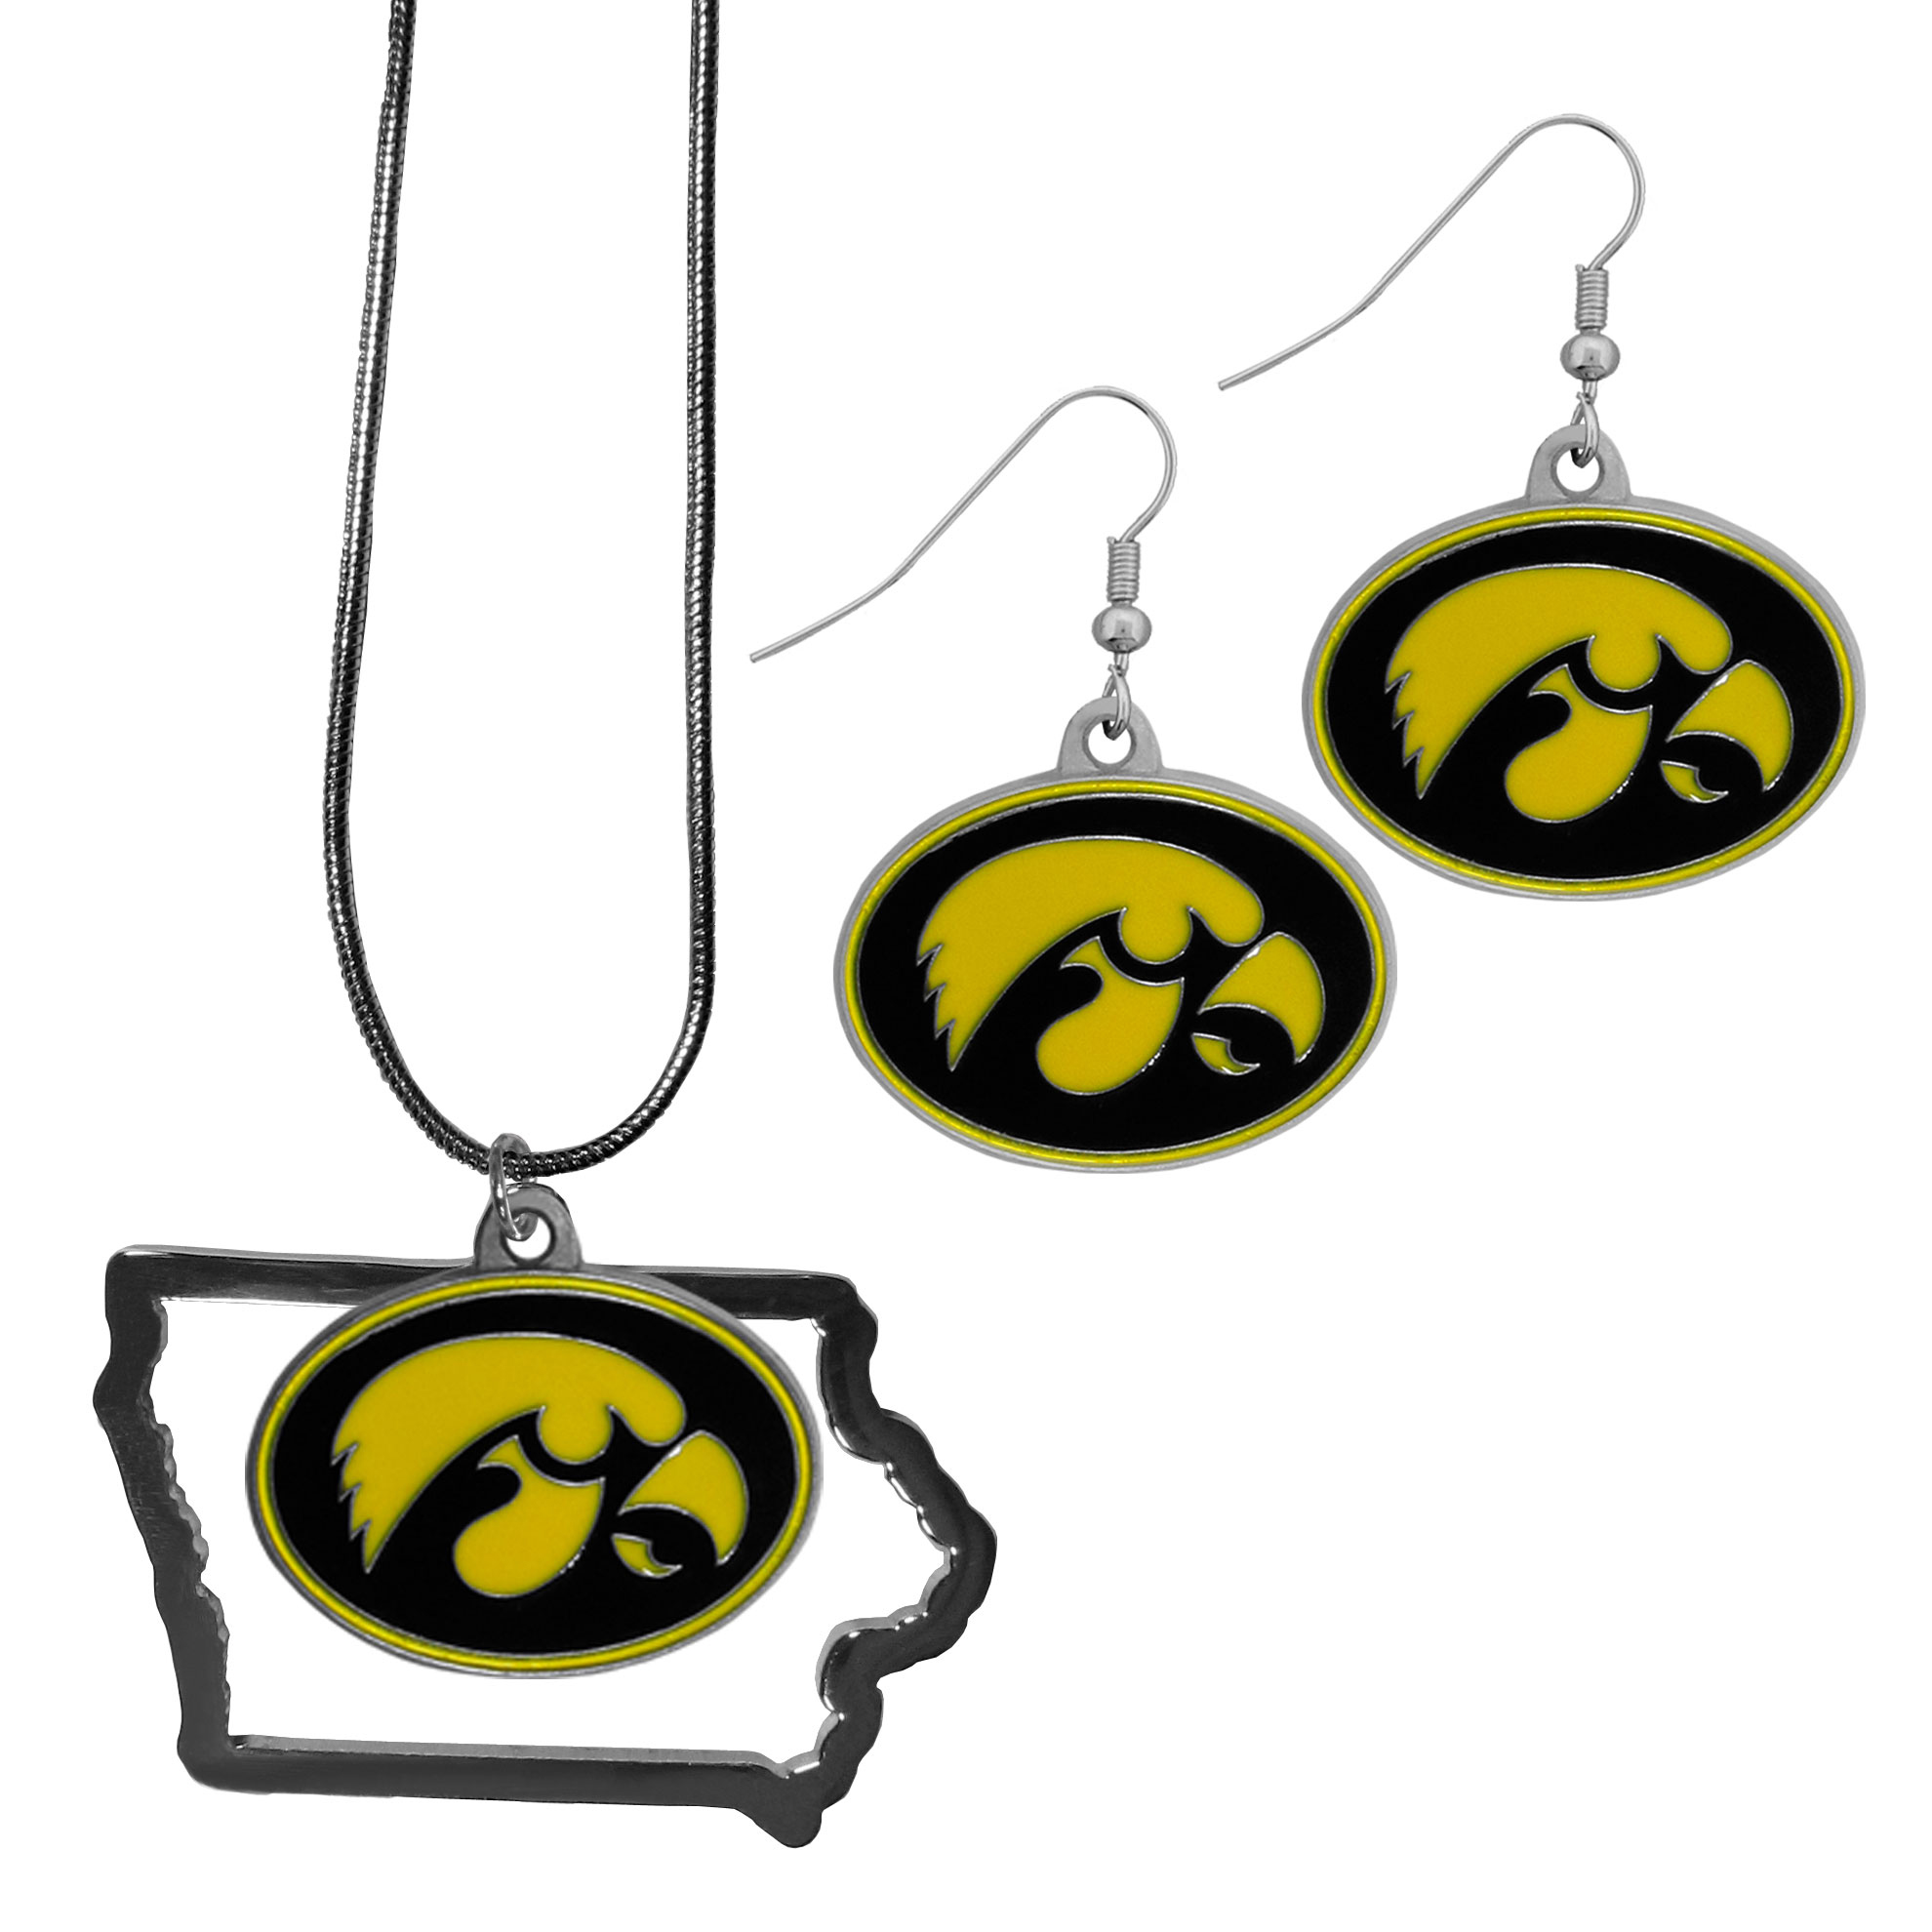 Iowa Hawkeyes Dangle Earrings and State Necklace Set - Get in on the trend! State themes are a trend that just keeps getting more popular and this jewelry set takes the state style and give it a sporty twist with a Iowa Hawkeyes necklace that features an Arizona state outline charm paired with a beautiful team charm and matching team charm dangle earrings. The earrings feature hypoallergenic fishhook posts that are nickel free.